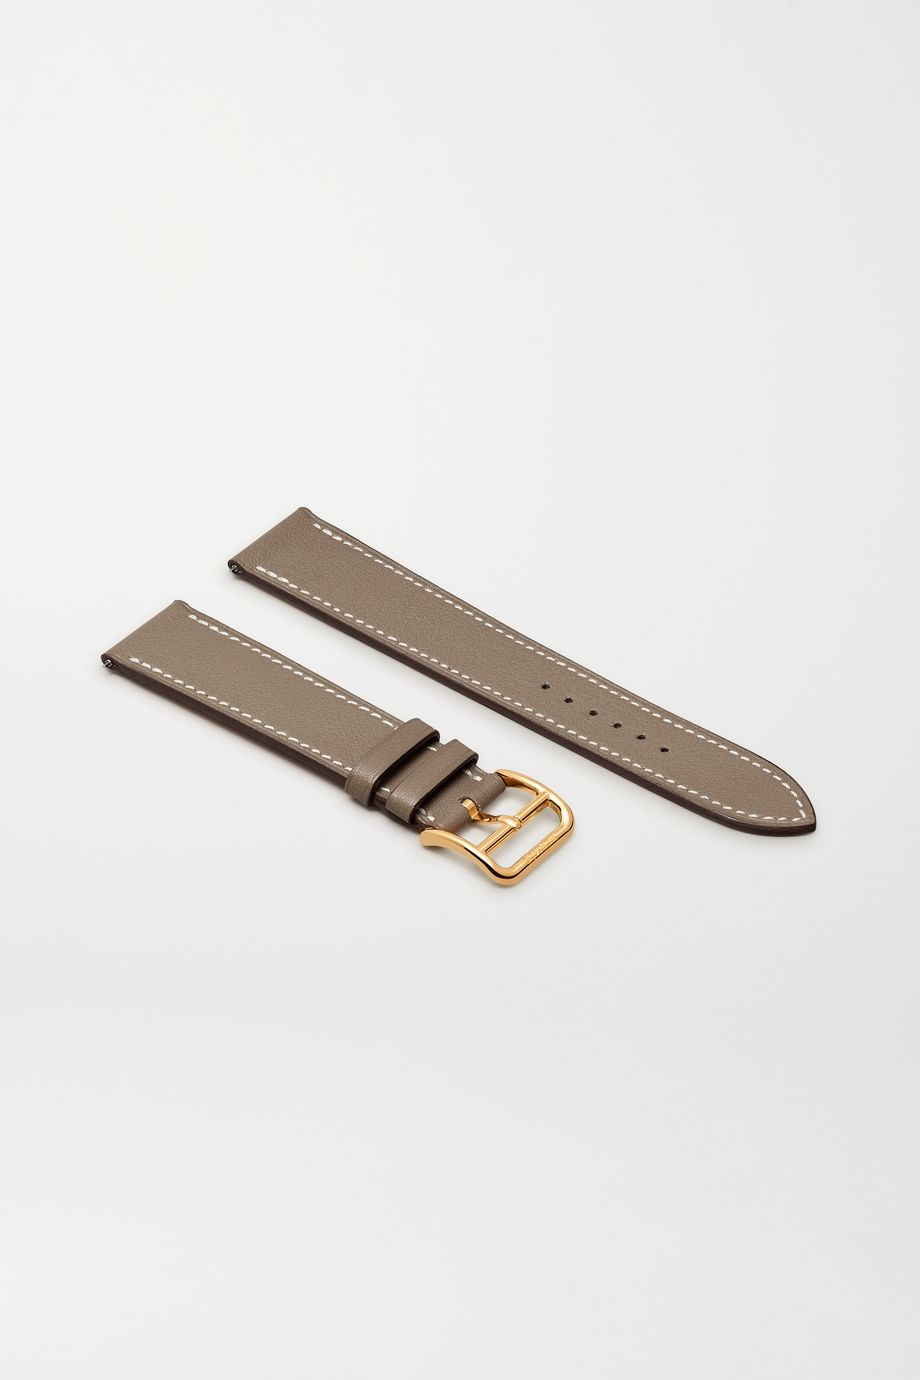 Hermès Timepieces Heure H 26.4mm leather watch strap